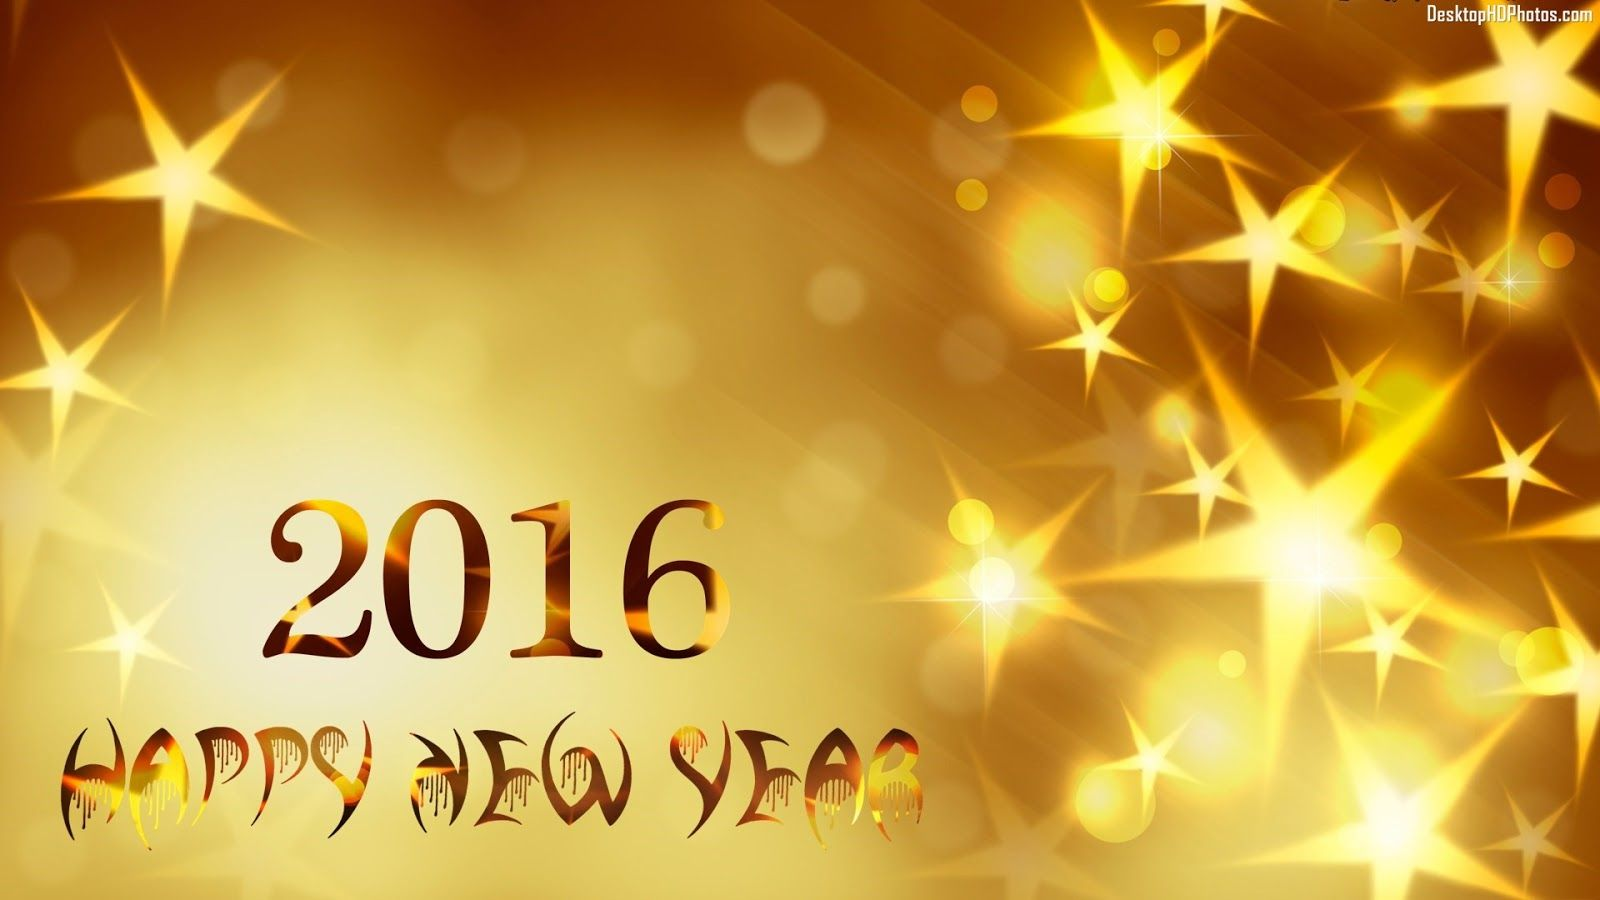 Happy new year 2016 hd wallpapers free download httpwww happy new year 2016 hd wallpapers free download httpwelcomehappynewyear2016 voltagebd Image collections